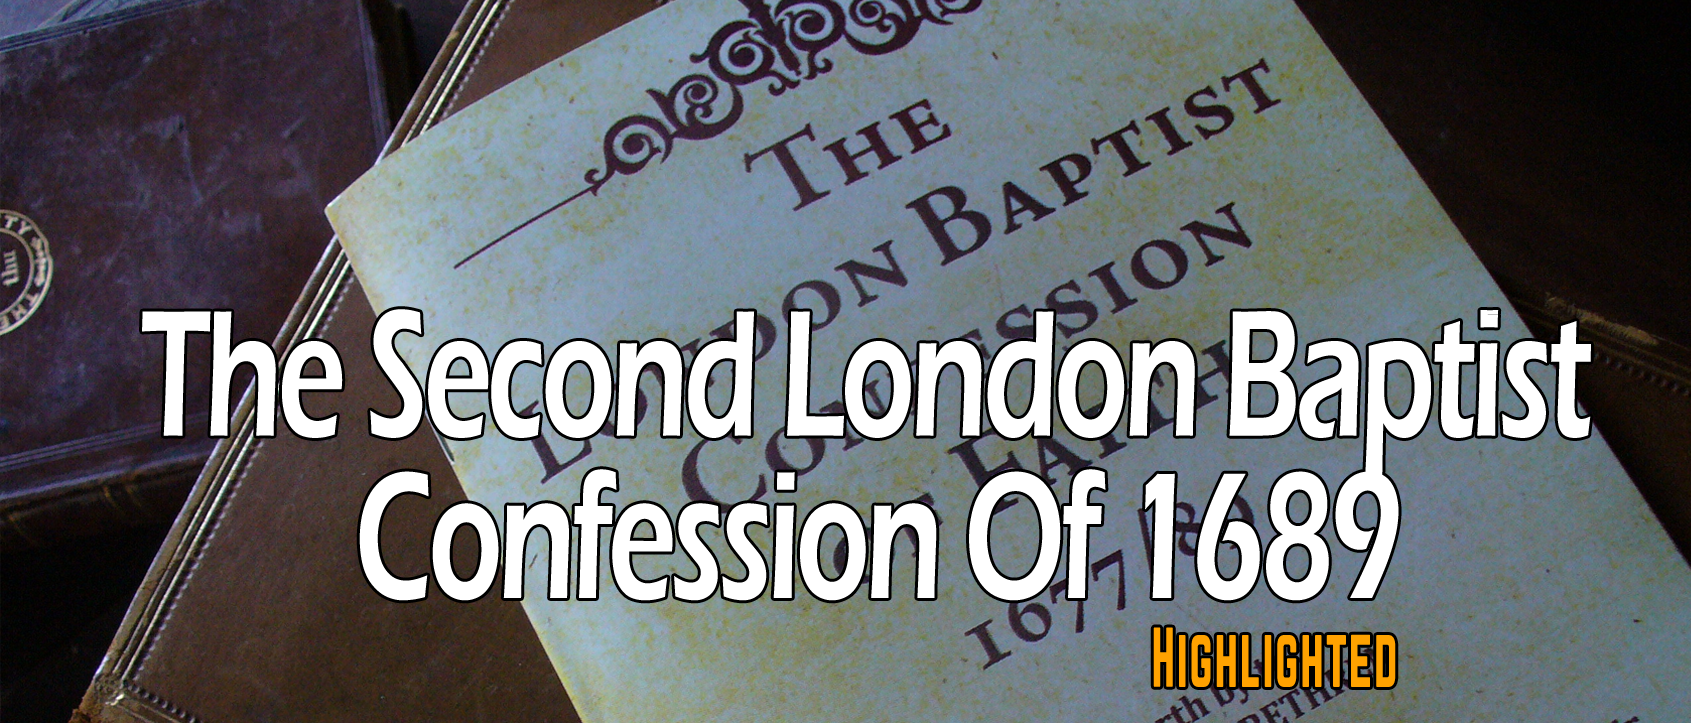 1689 Second Baptist Confession of Faith Highlighted